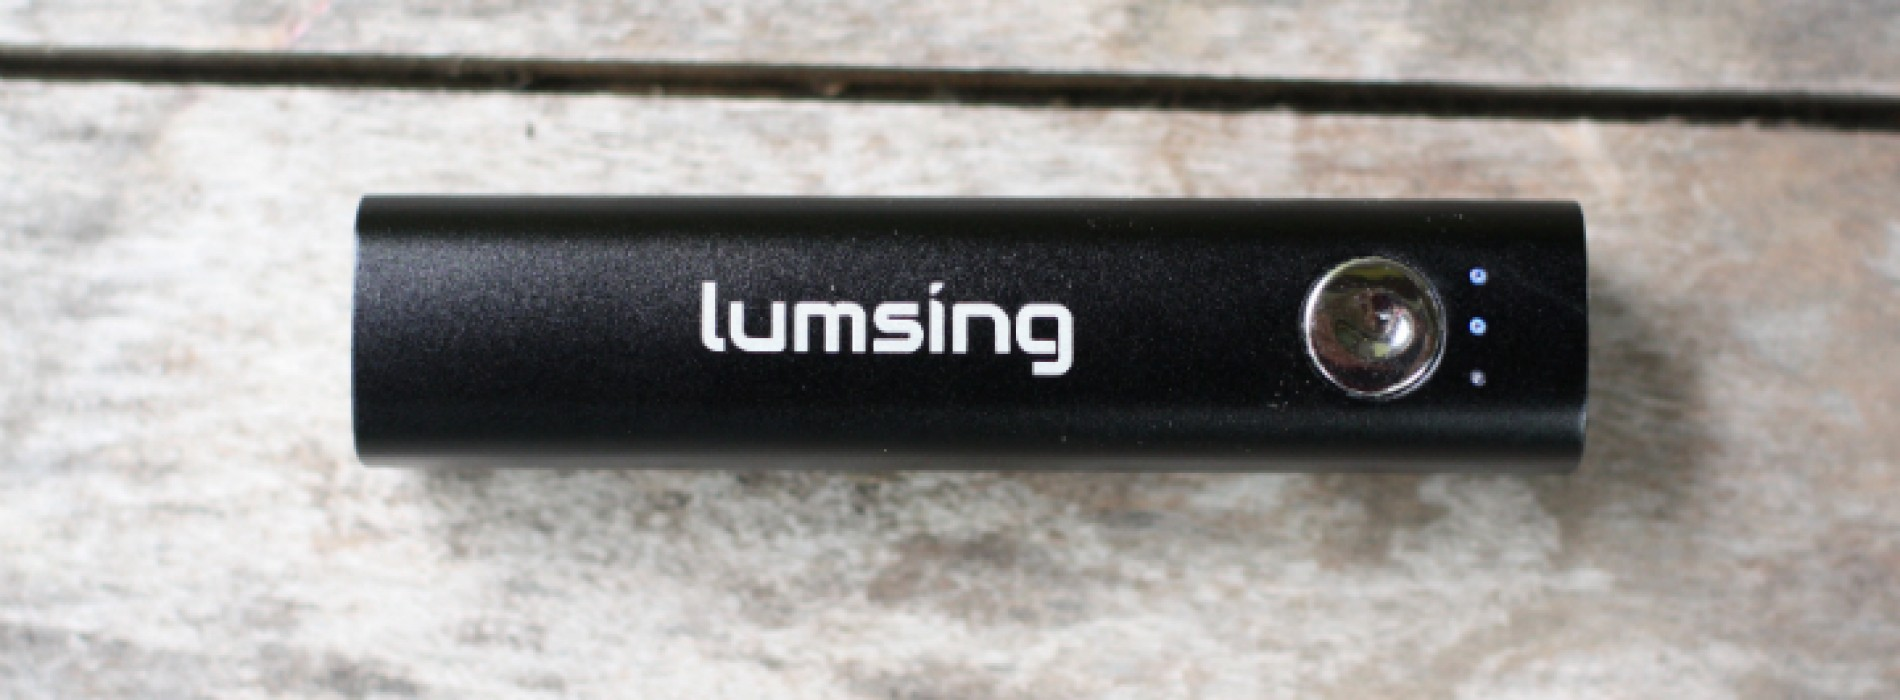 Lumsing Mini 3,000mAh Power Bank review